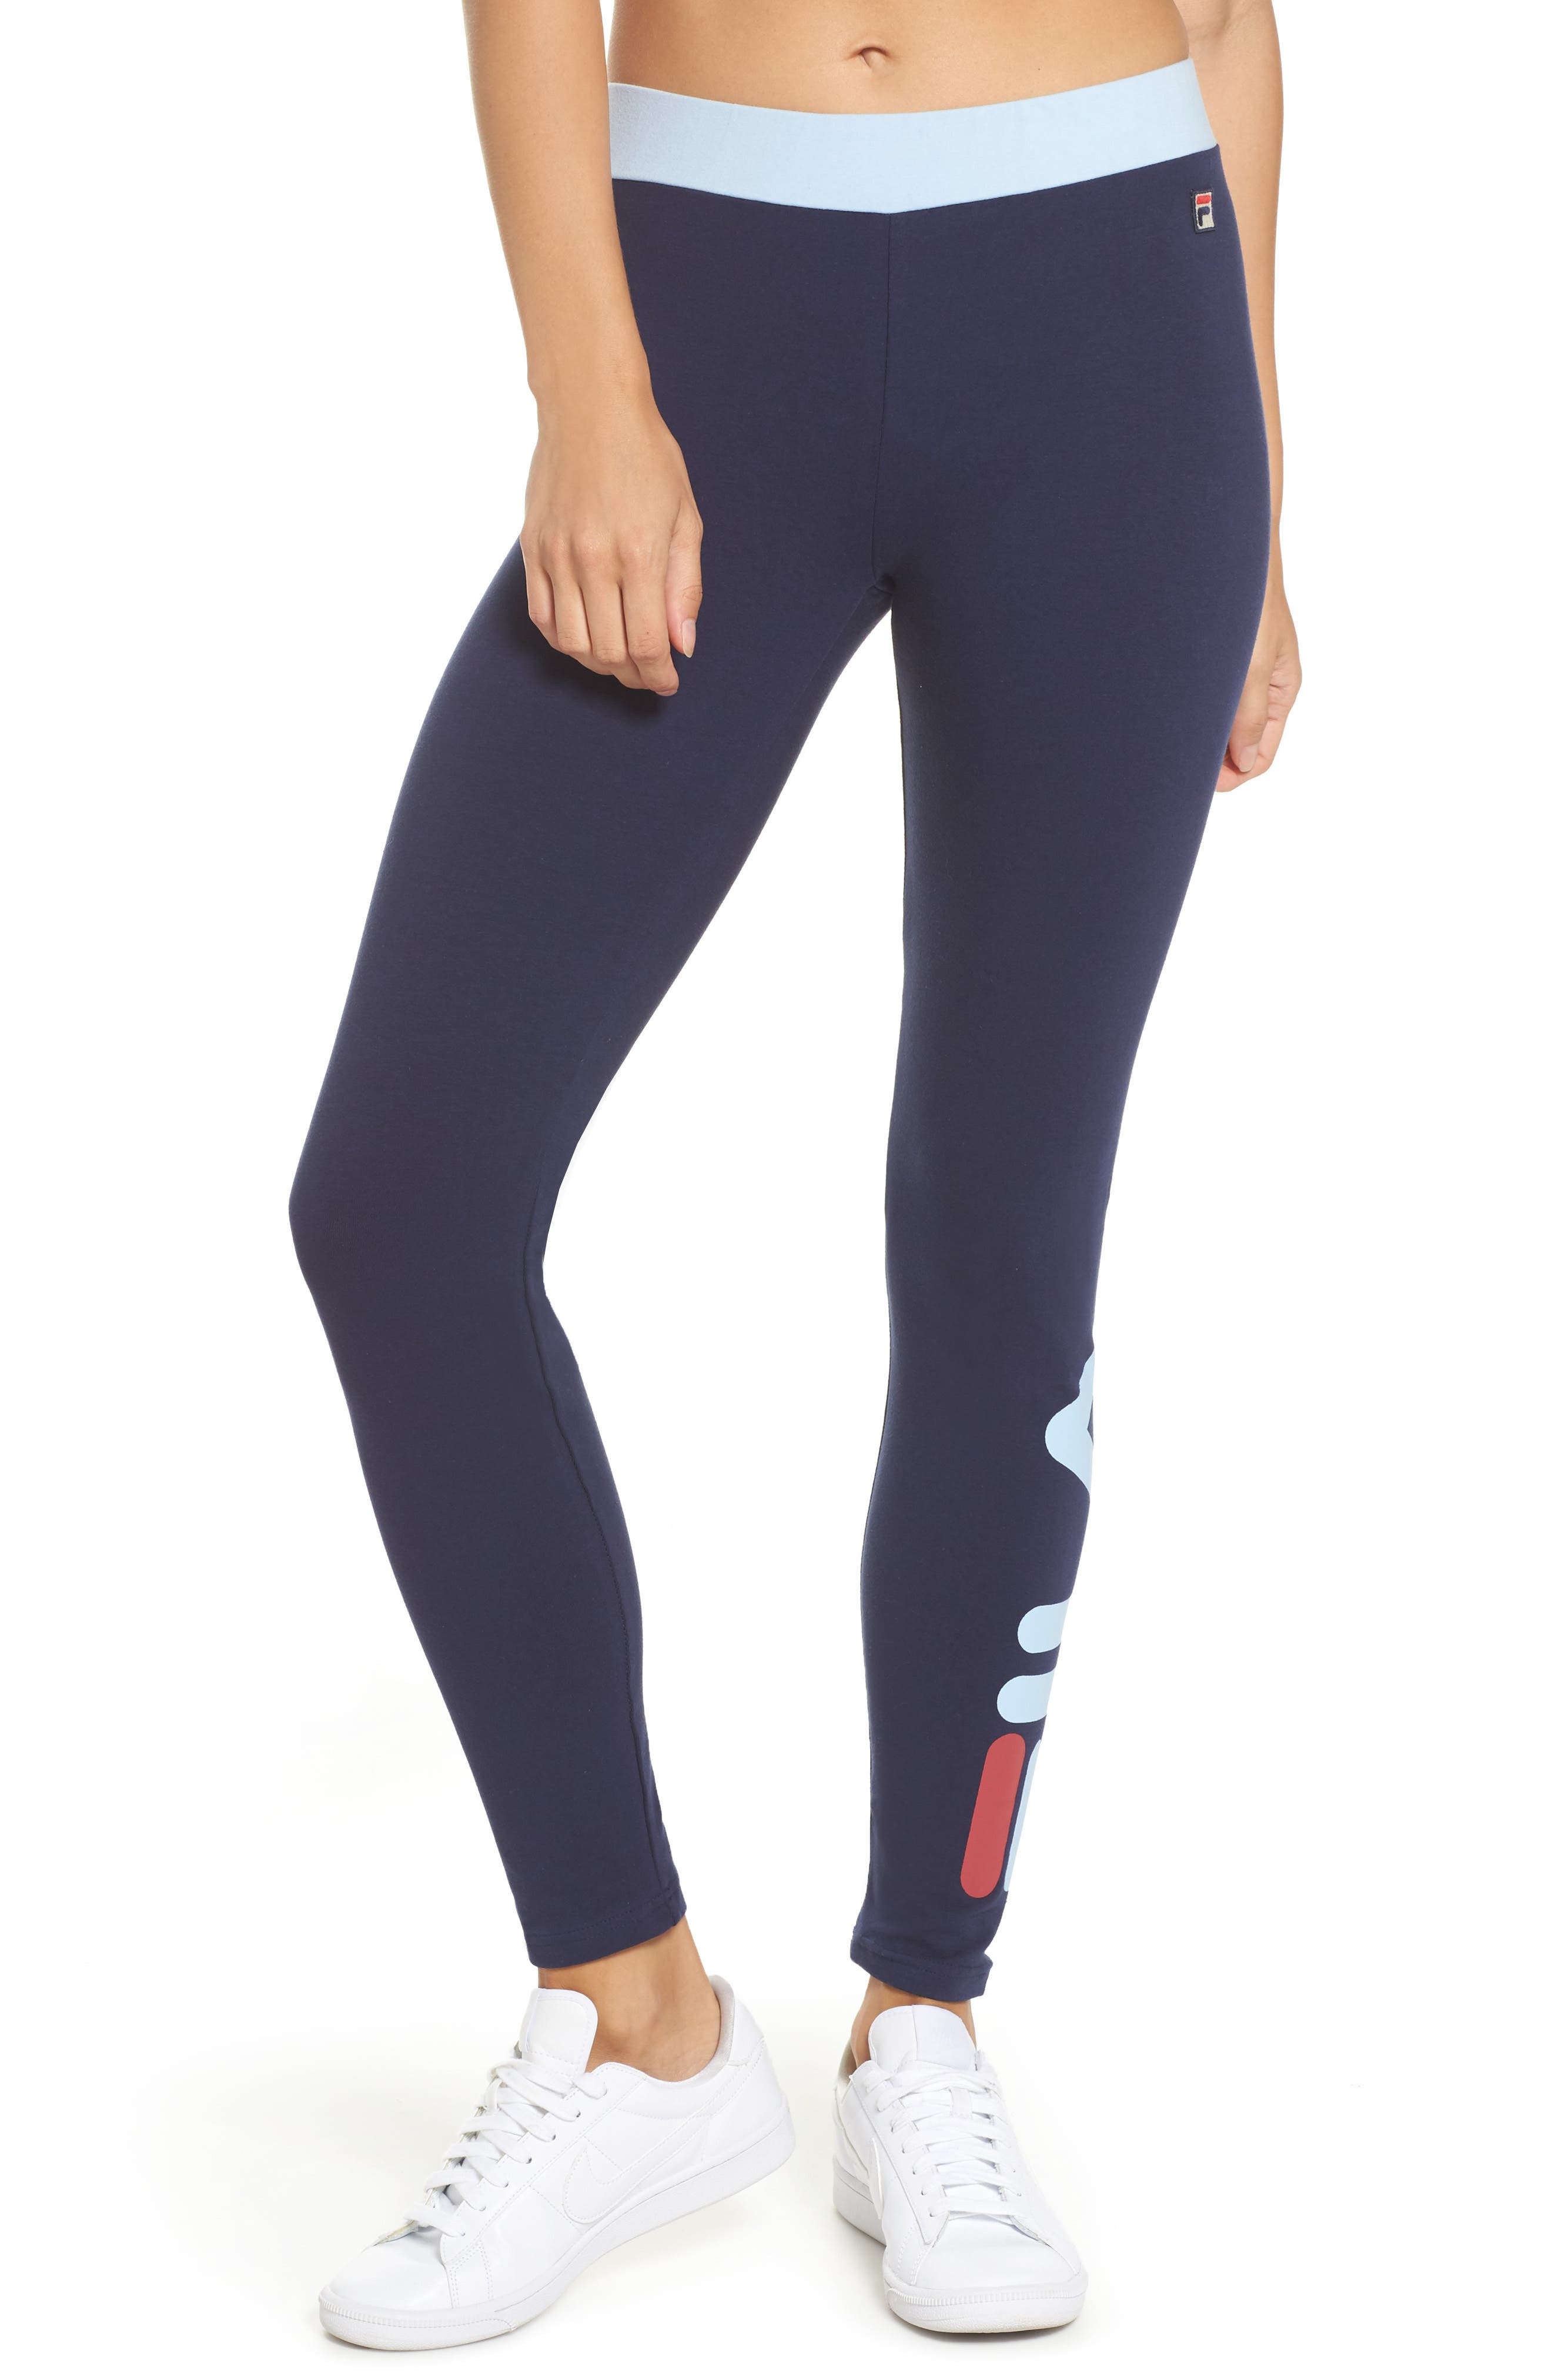 Imelda Training Tights,                         Main,                         color, Navy/ Skyway/ Rio Red